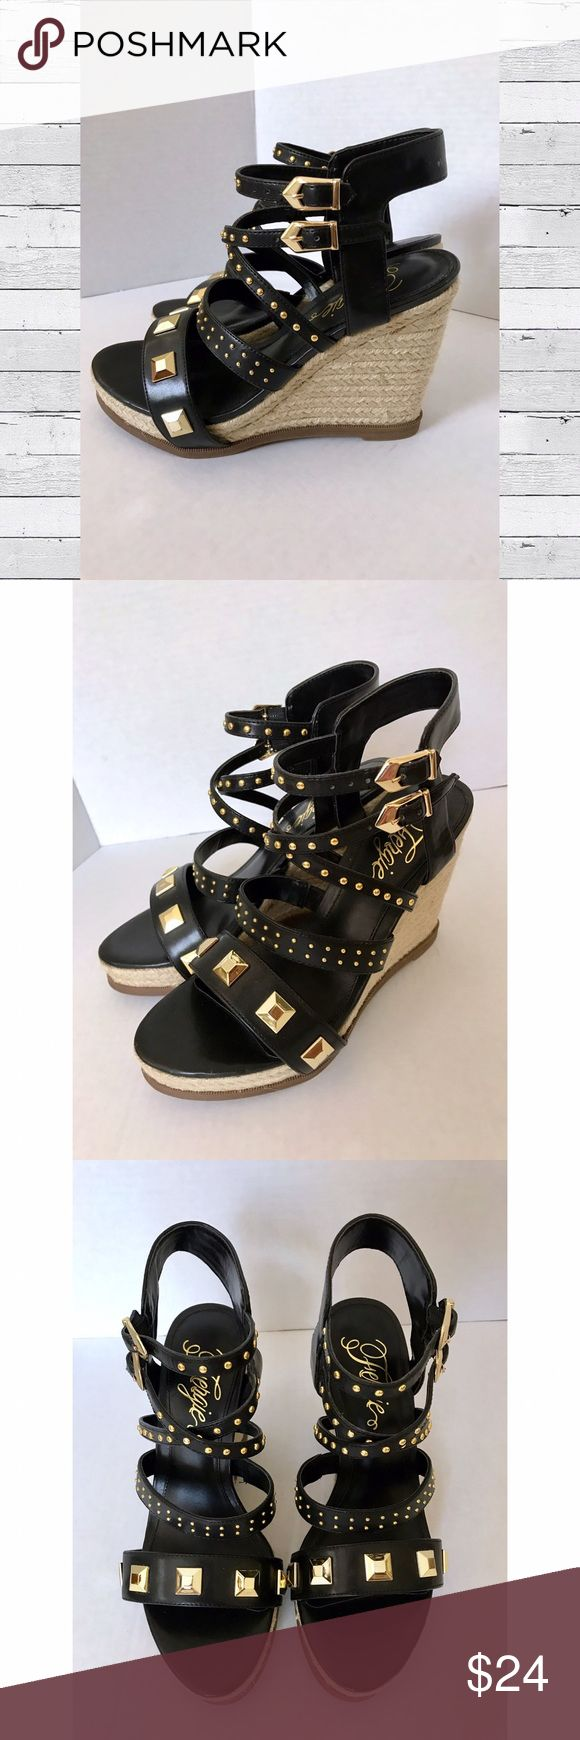 "Black Studded Espadrille Wedge Sandals New with box - Black strappy, gold studded, espadrille wedge sandals - 4"" heel - Brand: Fergie Fergie Shoes Espadrilles"